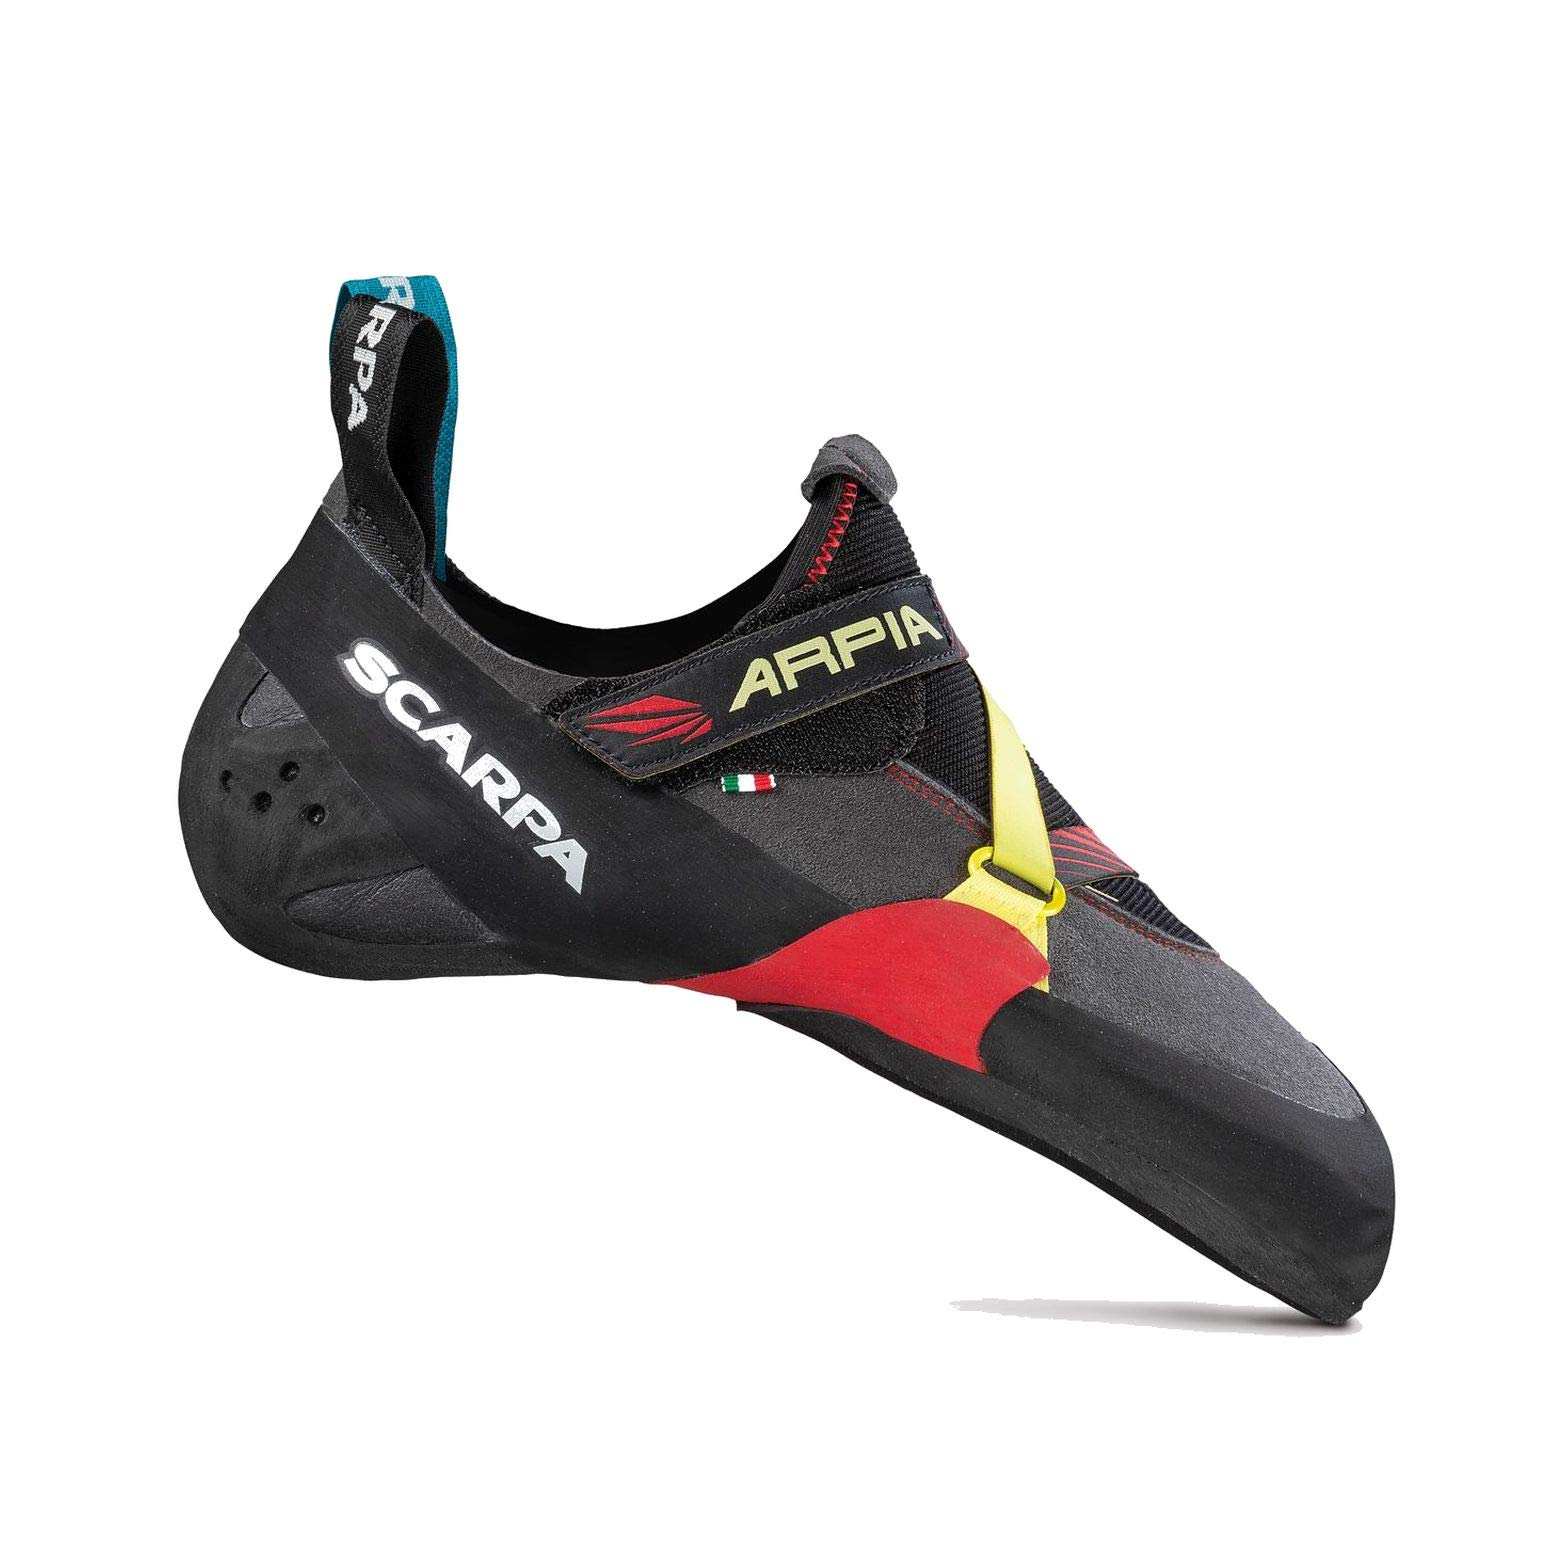 SCARPA Arpia Climbing Shoe - Men's Black/Red 42 by SCARPA